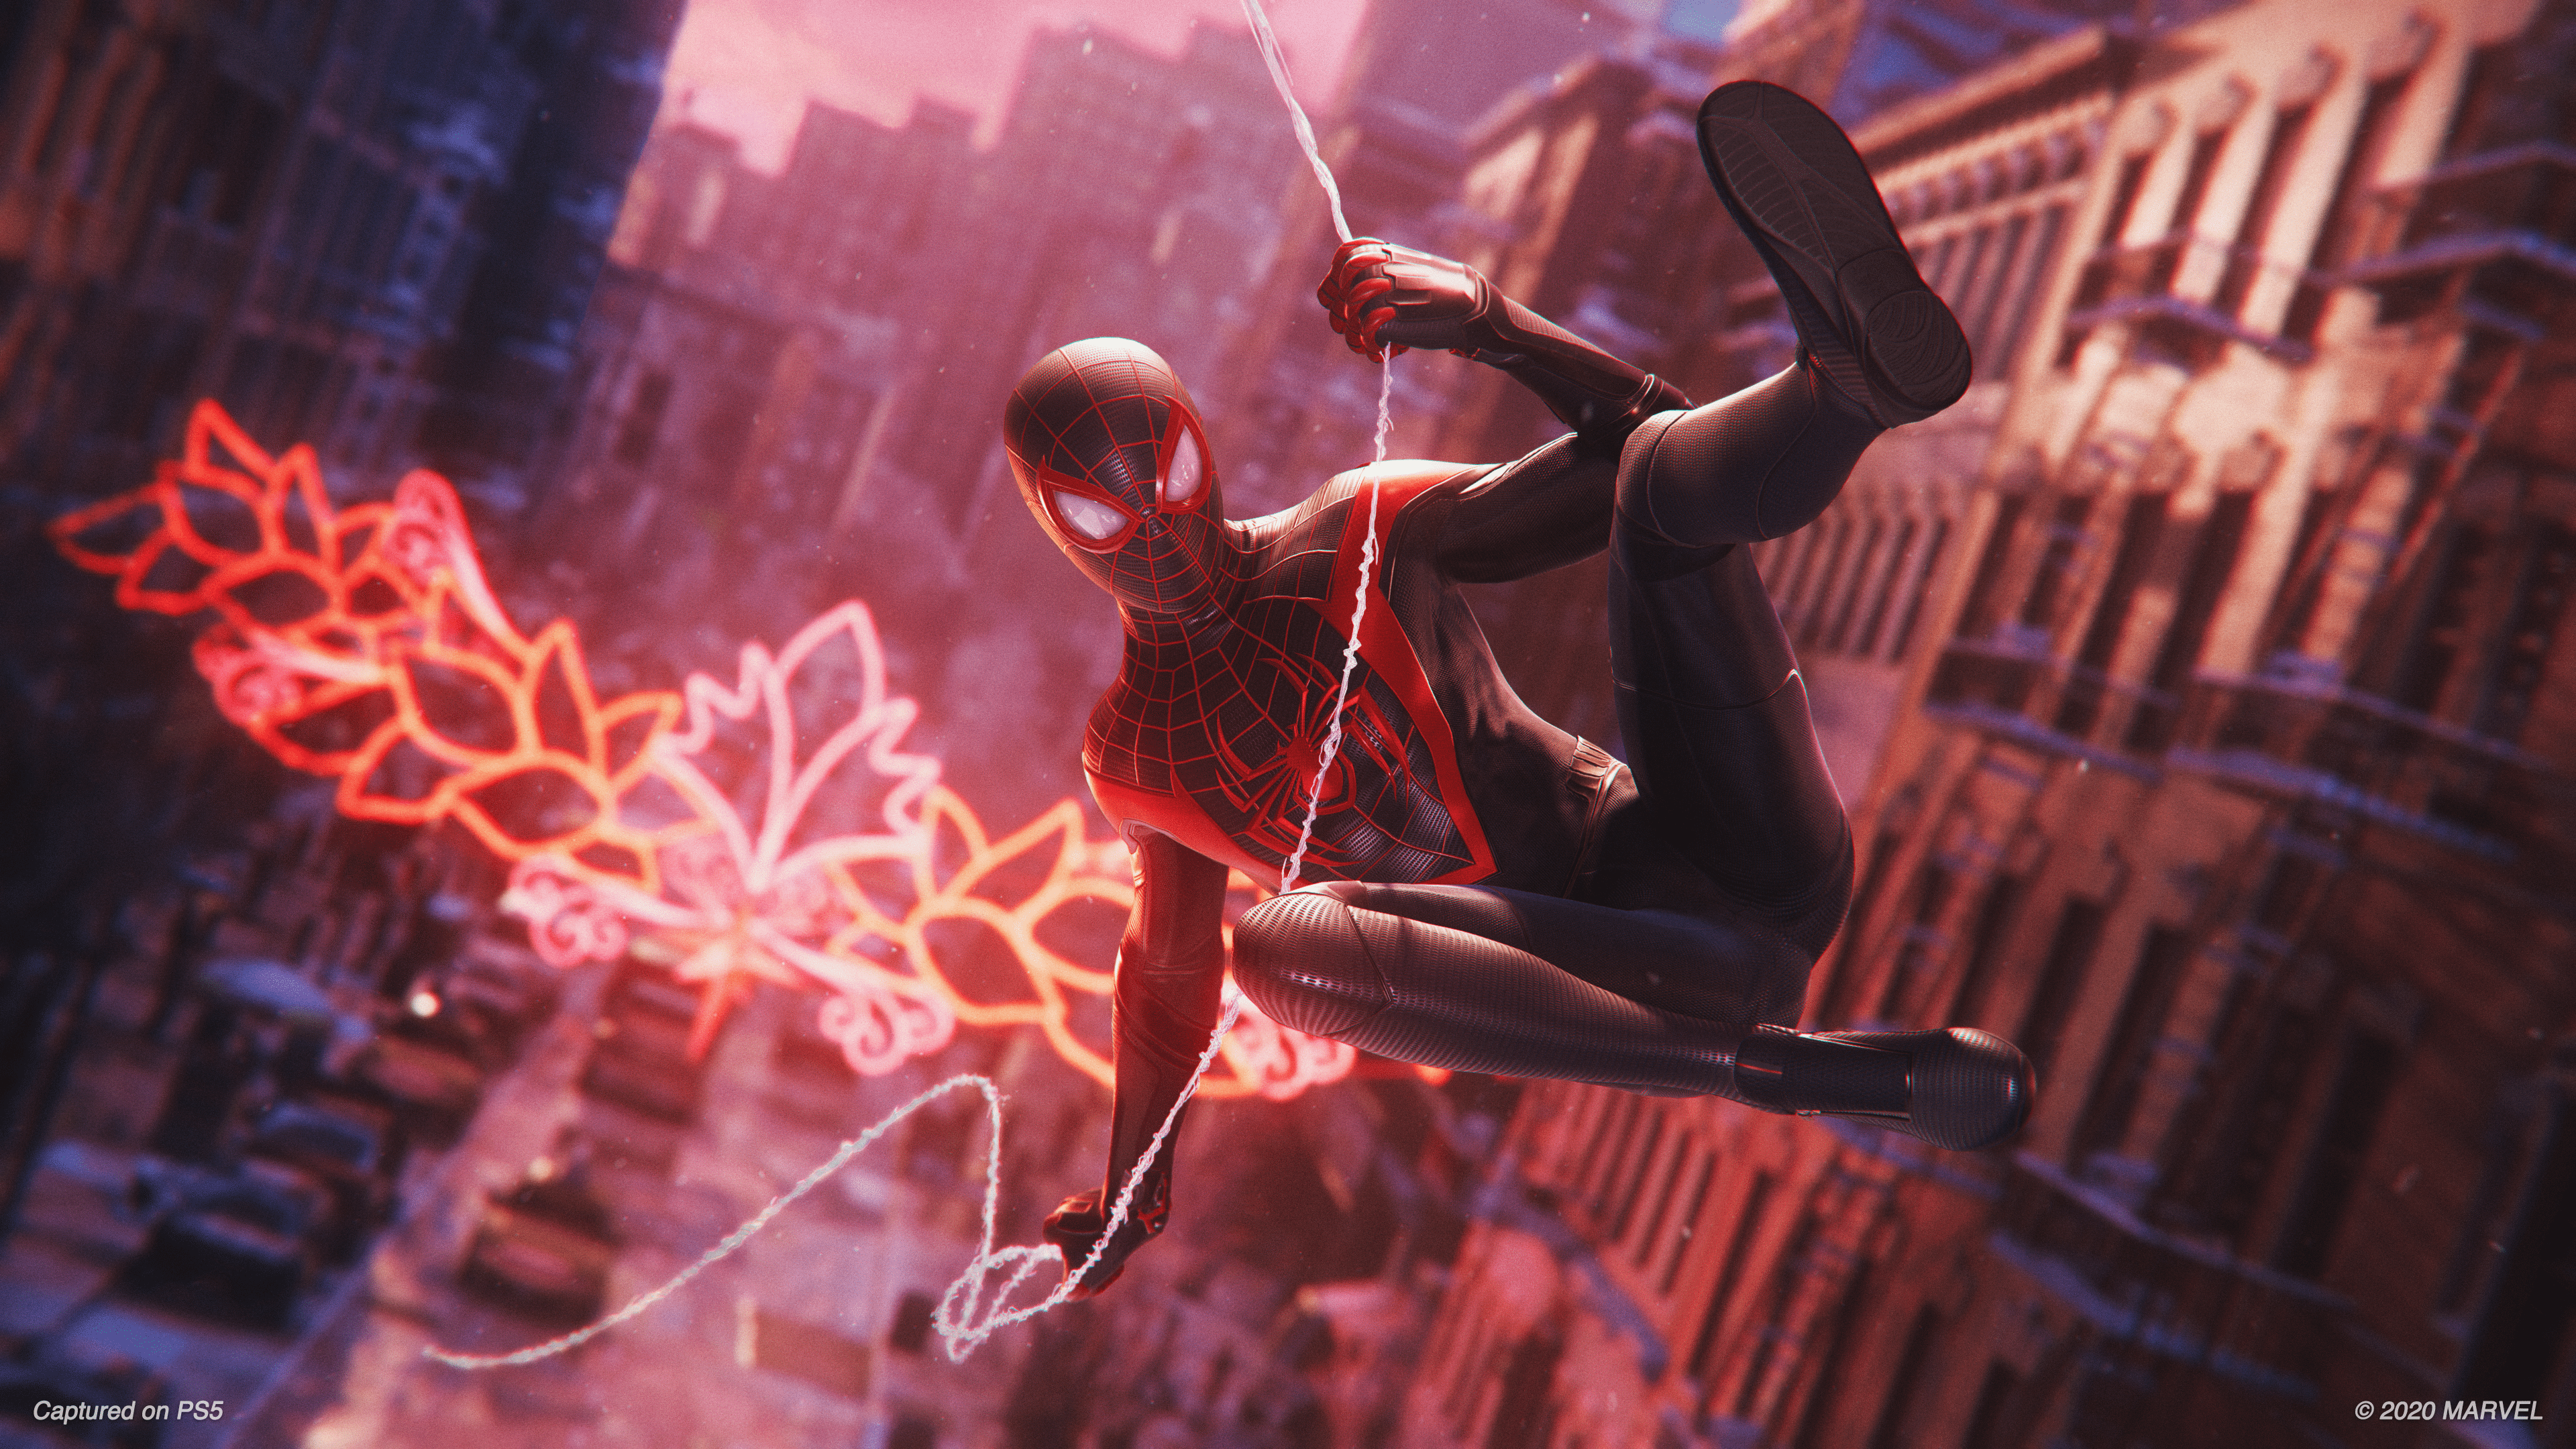 https://images.frandroid.com/wp-content/uploads/2020/06/milesmorales_swing_ps5_legal.png